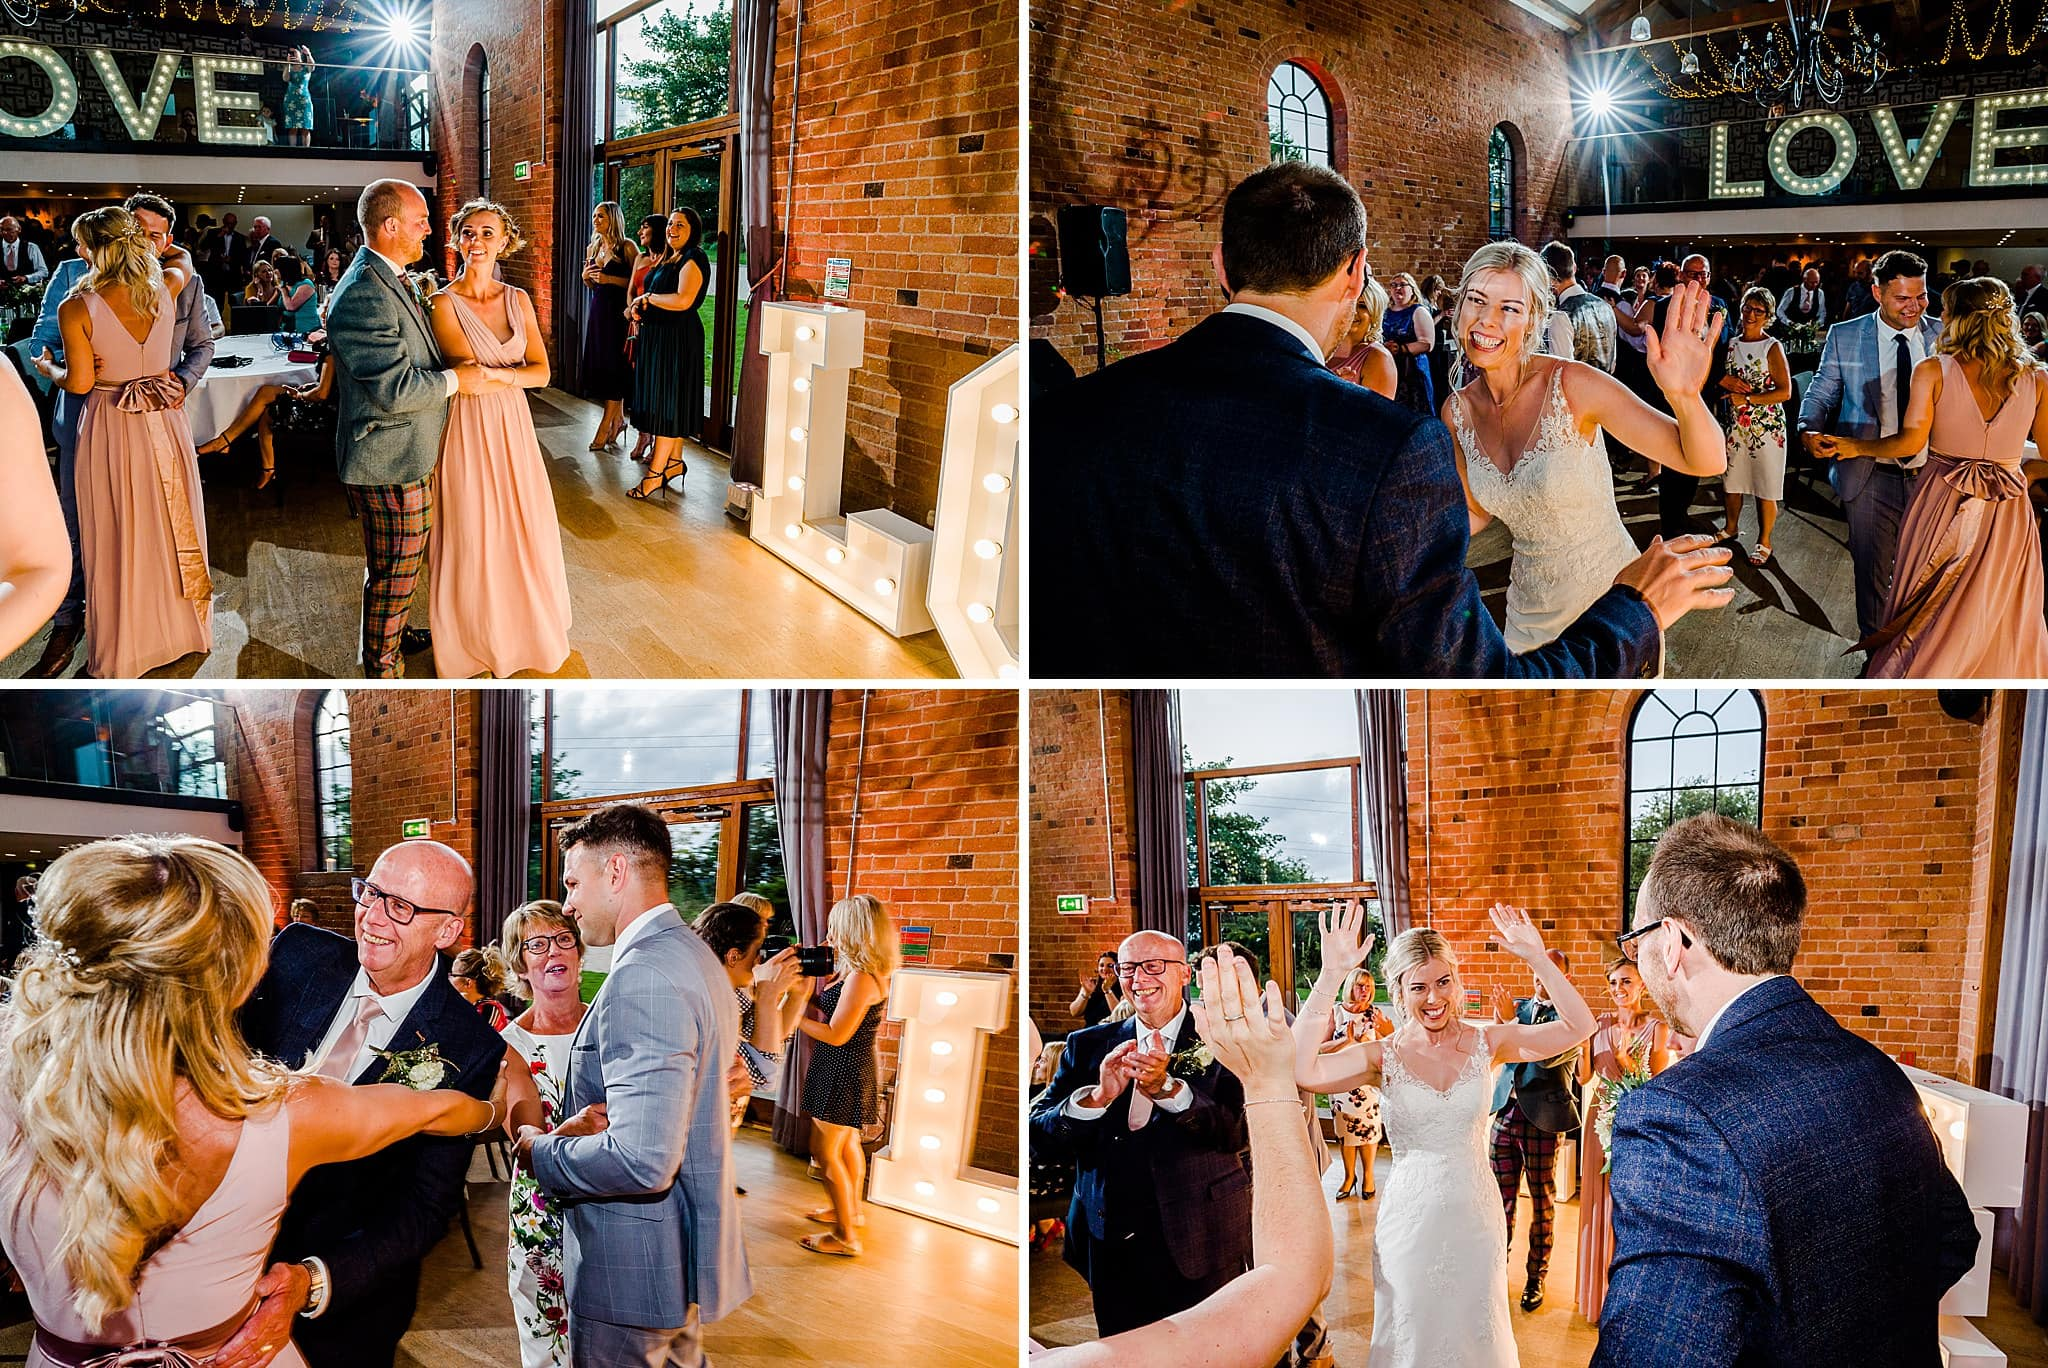 Guests join the bride and groom on the dancefloor at Carriage Hall